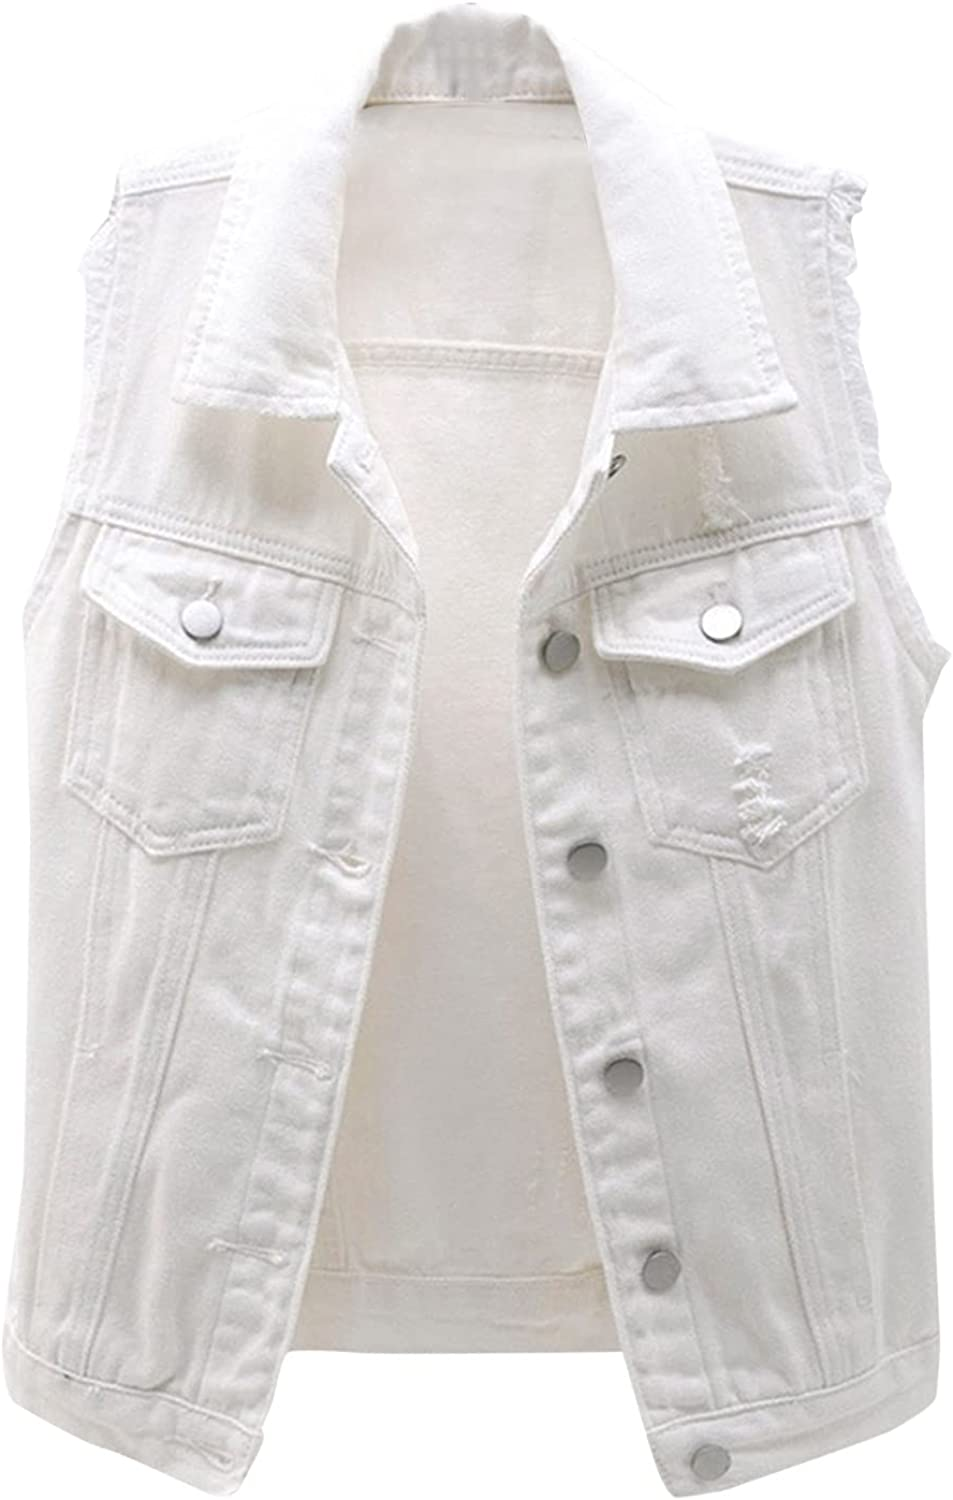 Women's Casual Denim Waistcoat Slim Fit Frayed Sleeveless Vest Button Down Ripped Tops with Pockets Denim Jacket Coat